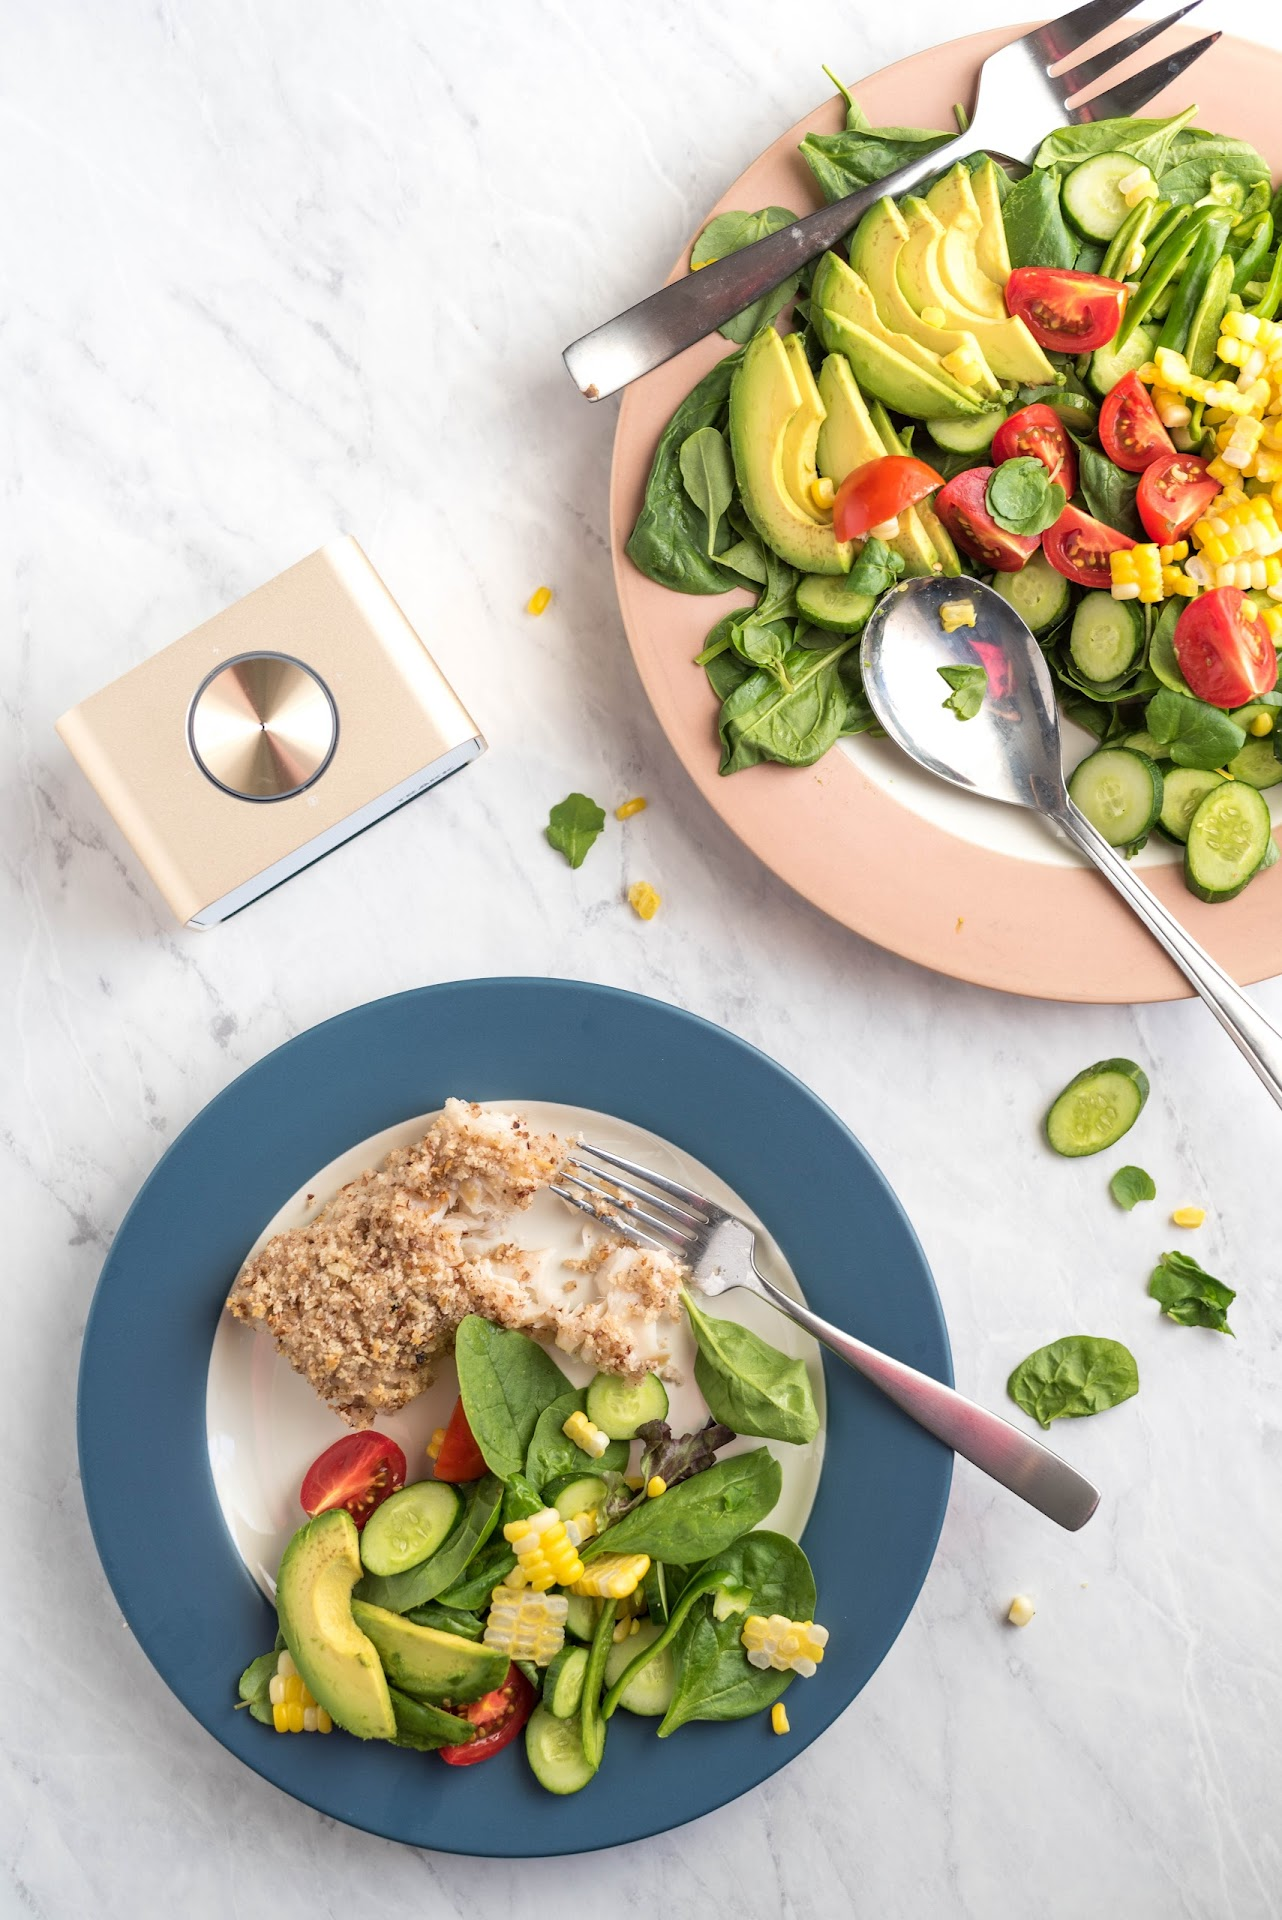 salad, pretty salad, gourmet, watercress, fresh, summer salad, healthy meal, pecan crusted cod, seafood, gold speaker, bluetooth speaker, best speaker, trakk speaker review, trakk ceo,